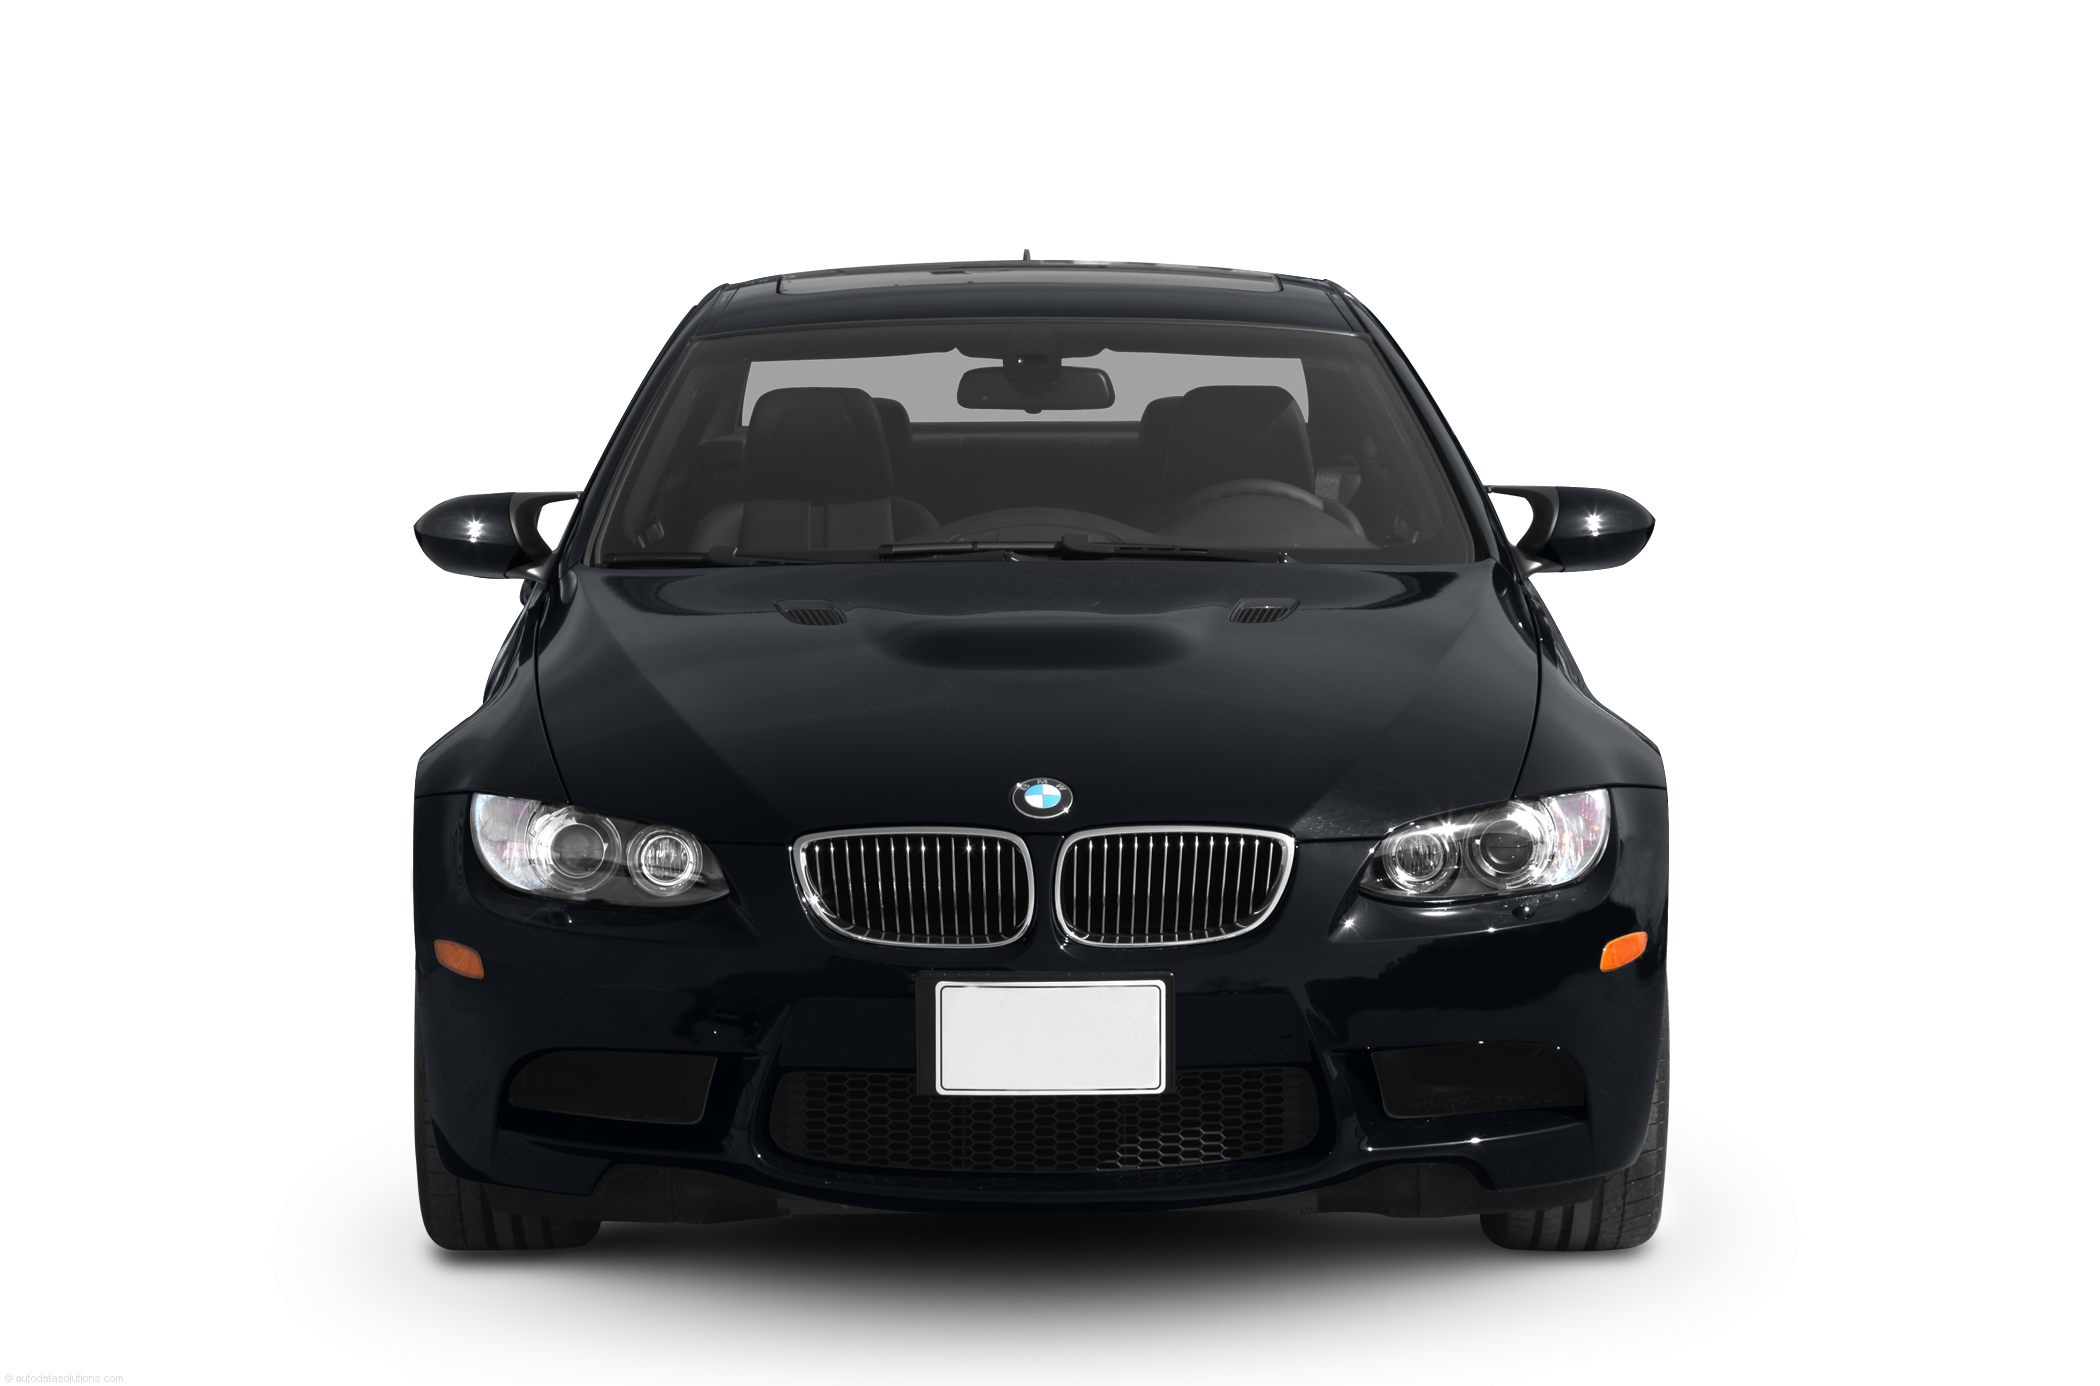 Bmw Car Front Png 32724 Free Icons And Png Backgrounds